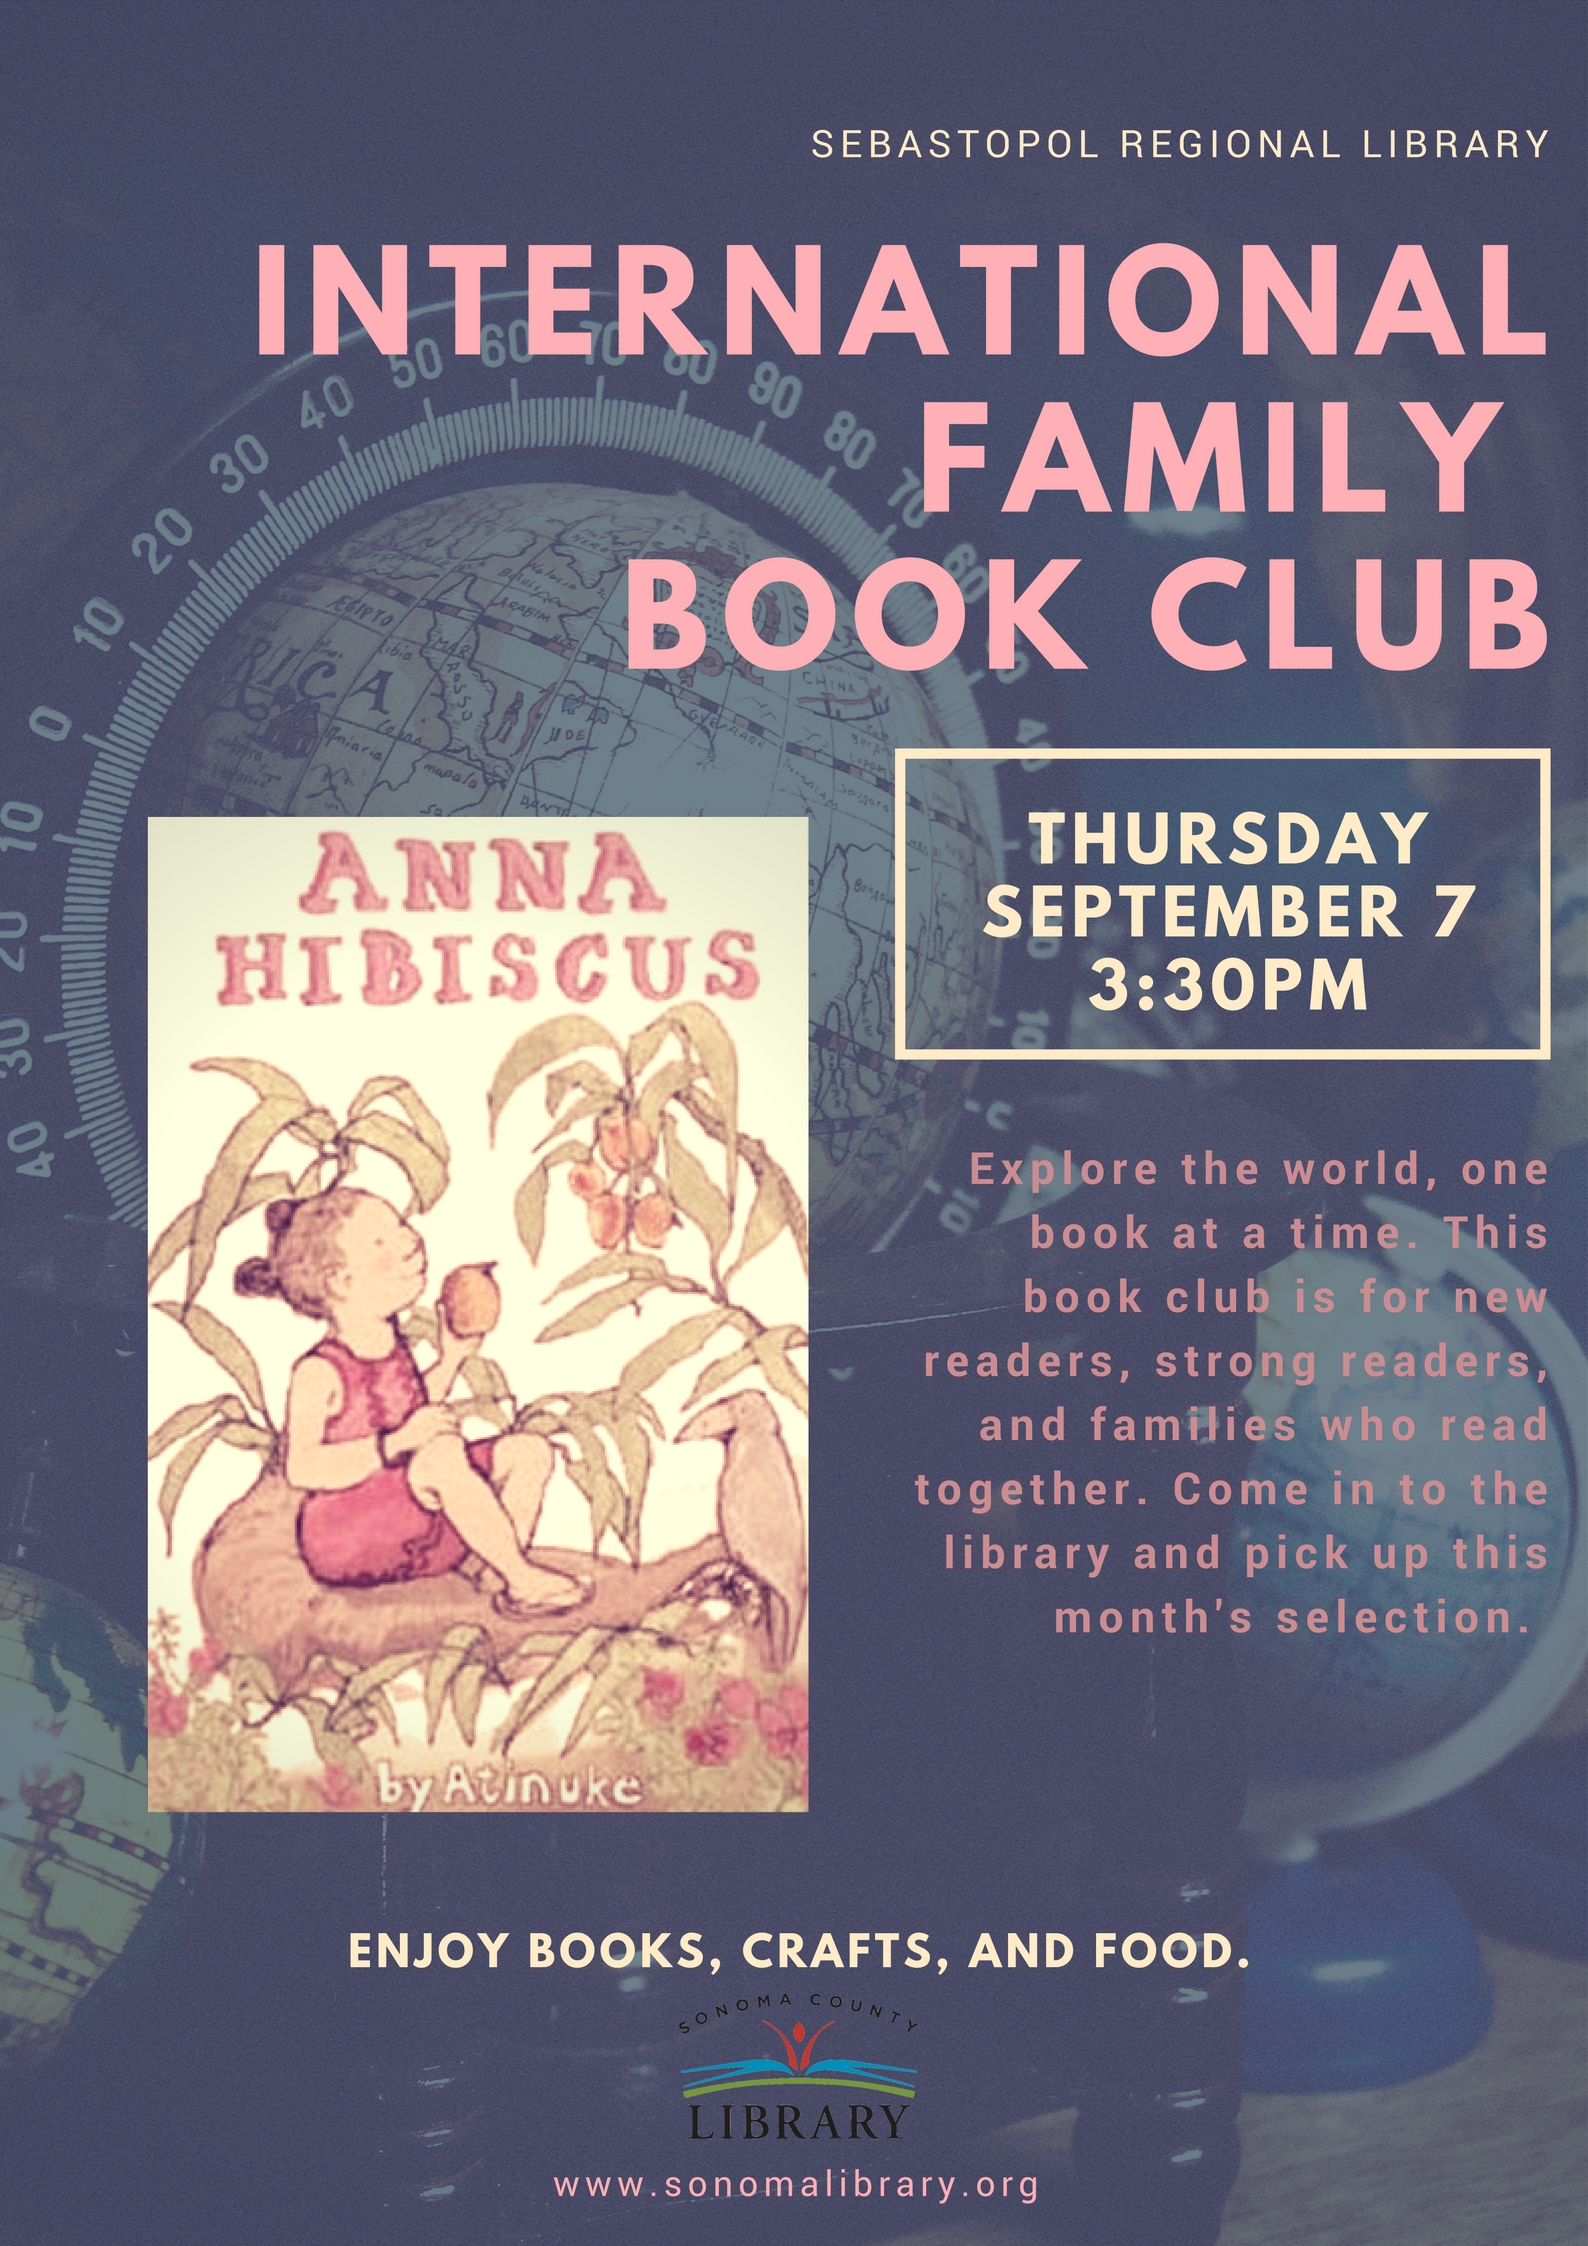 International Family Book Club